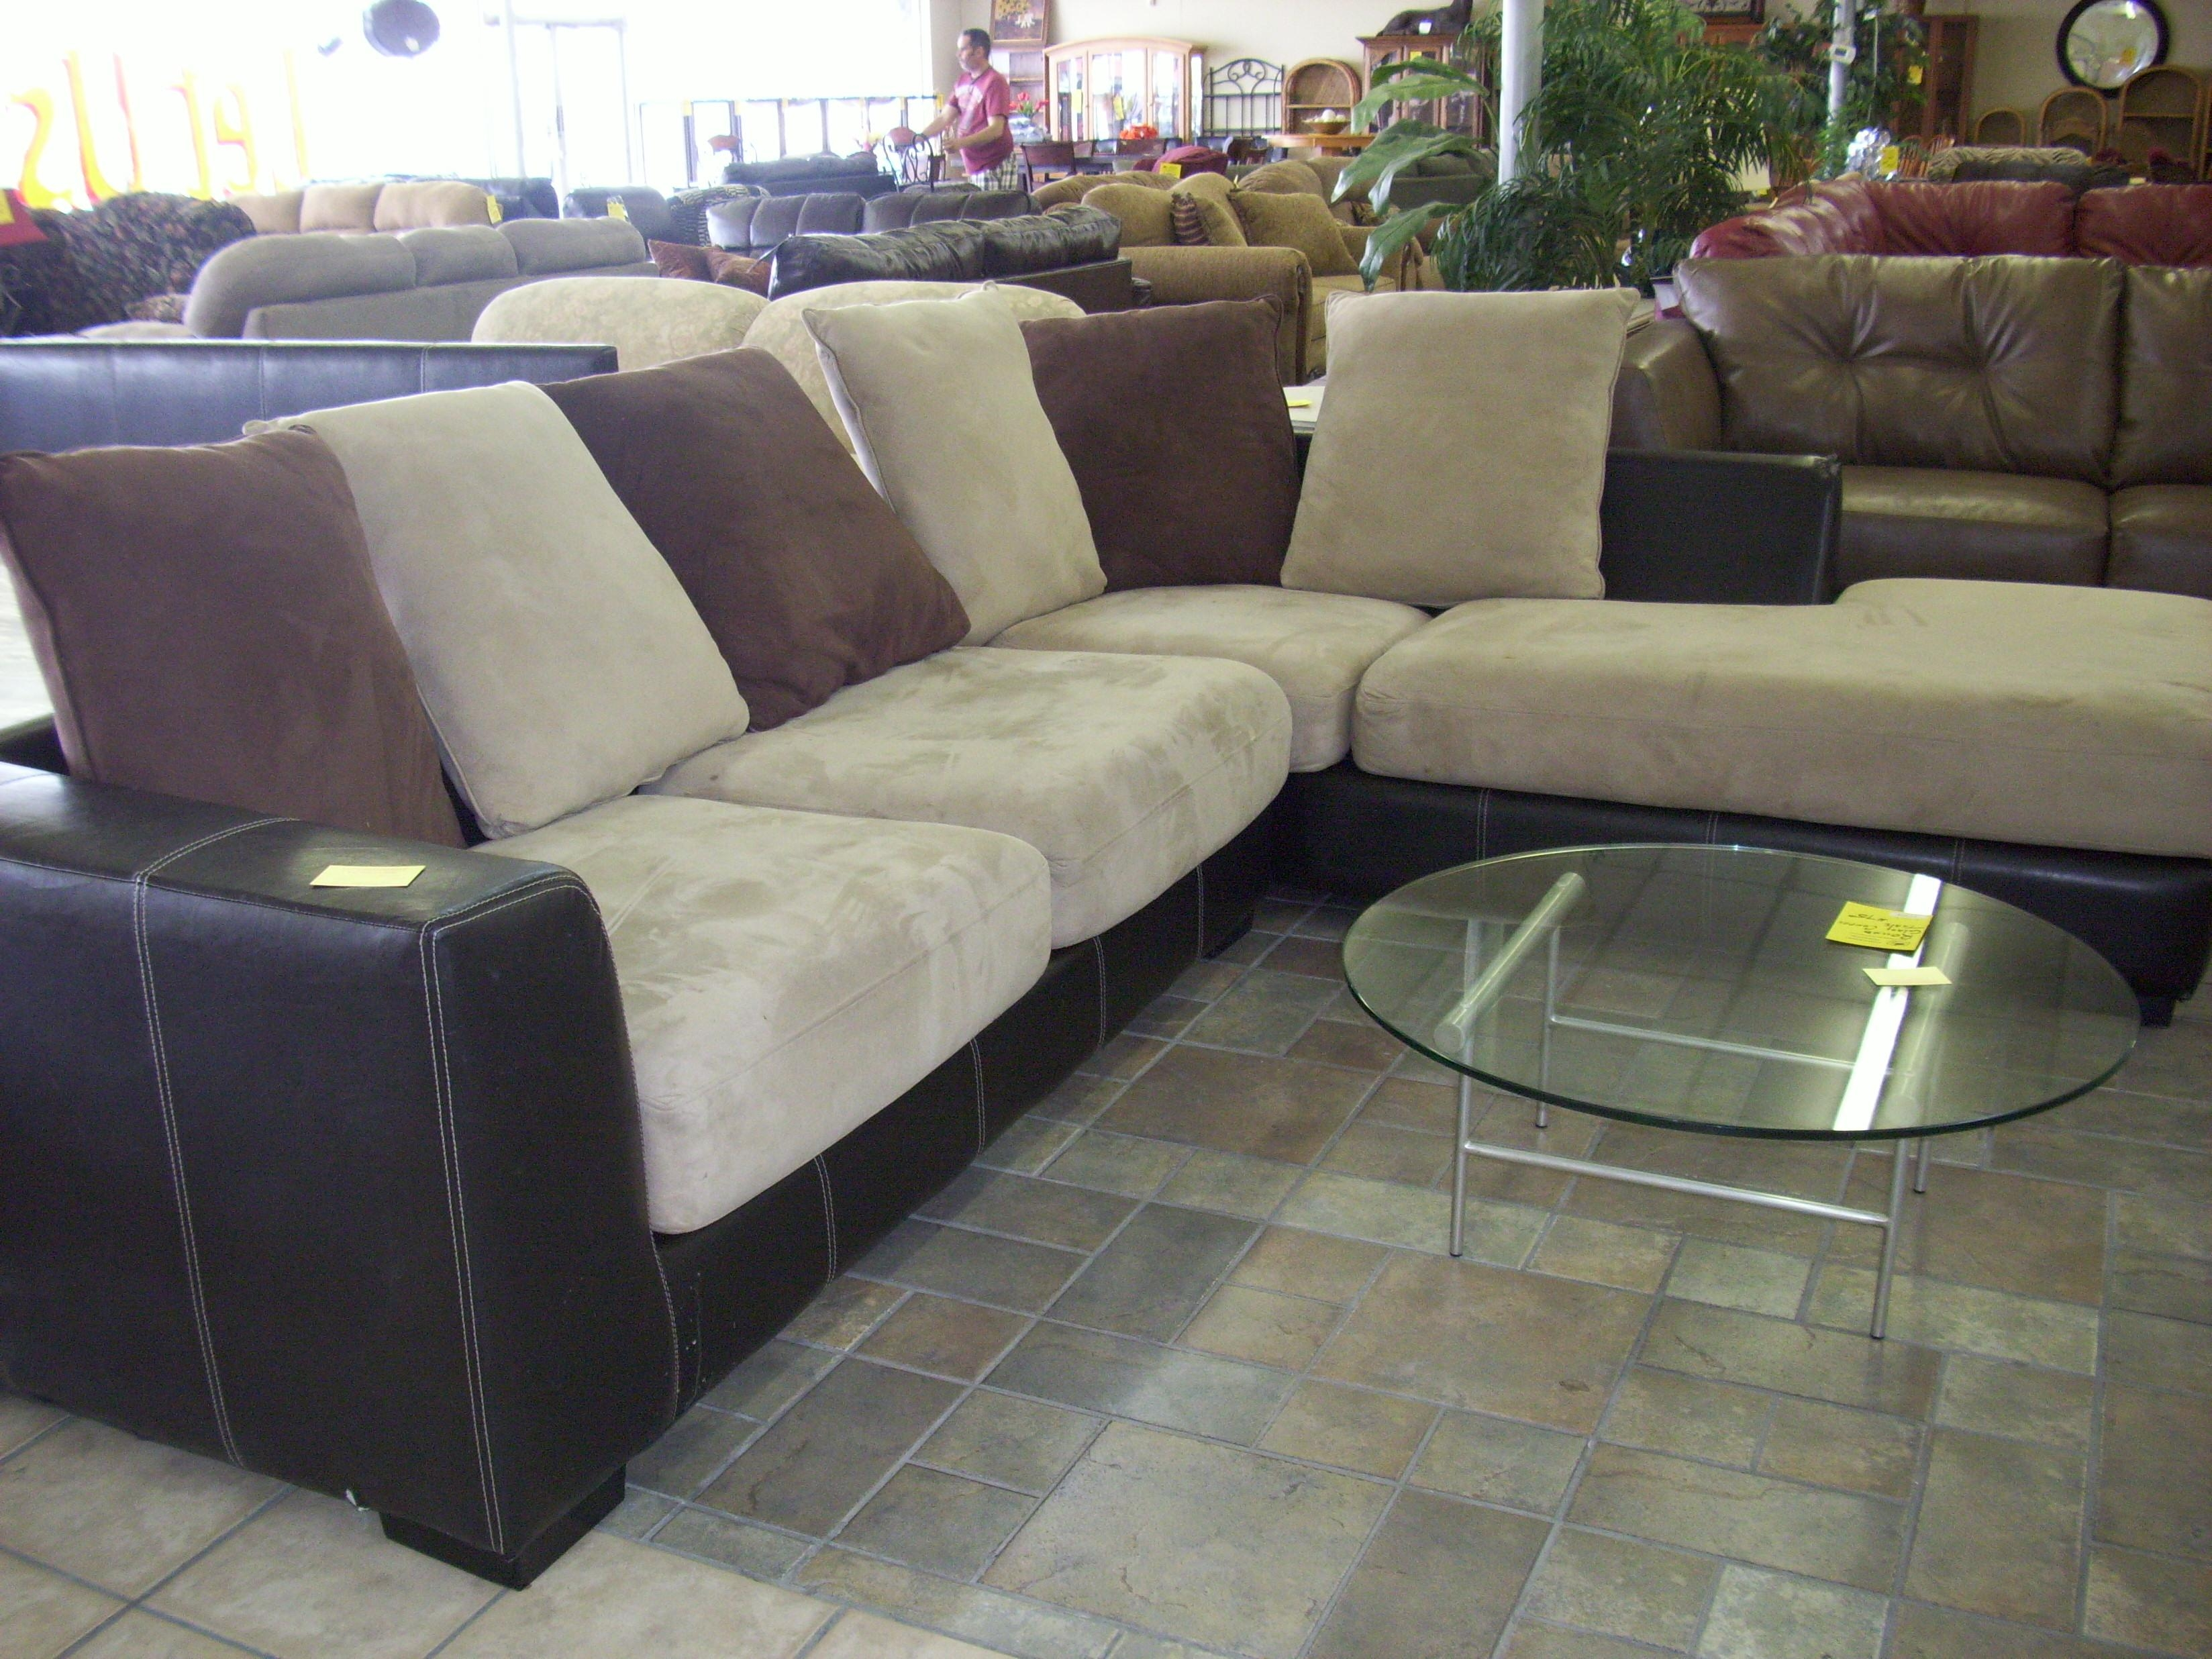 Interior: Impressive Microsuede Sectional Collections Sets For With Regard To Microsuede Sectional Sofas (View 5 of 20)